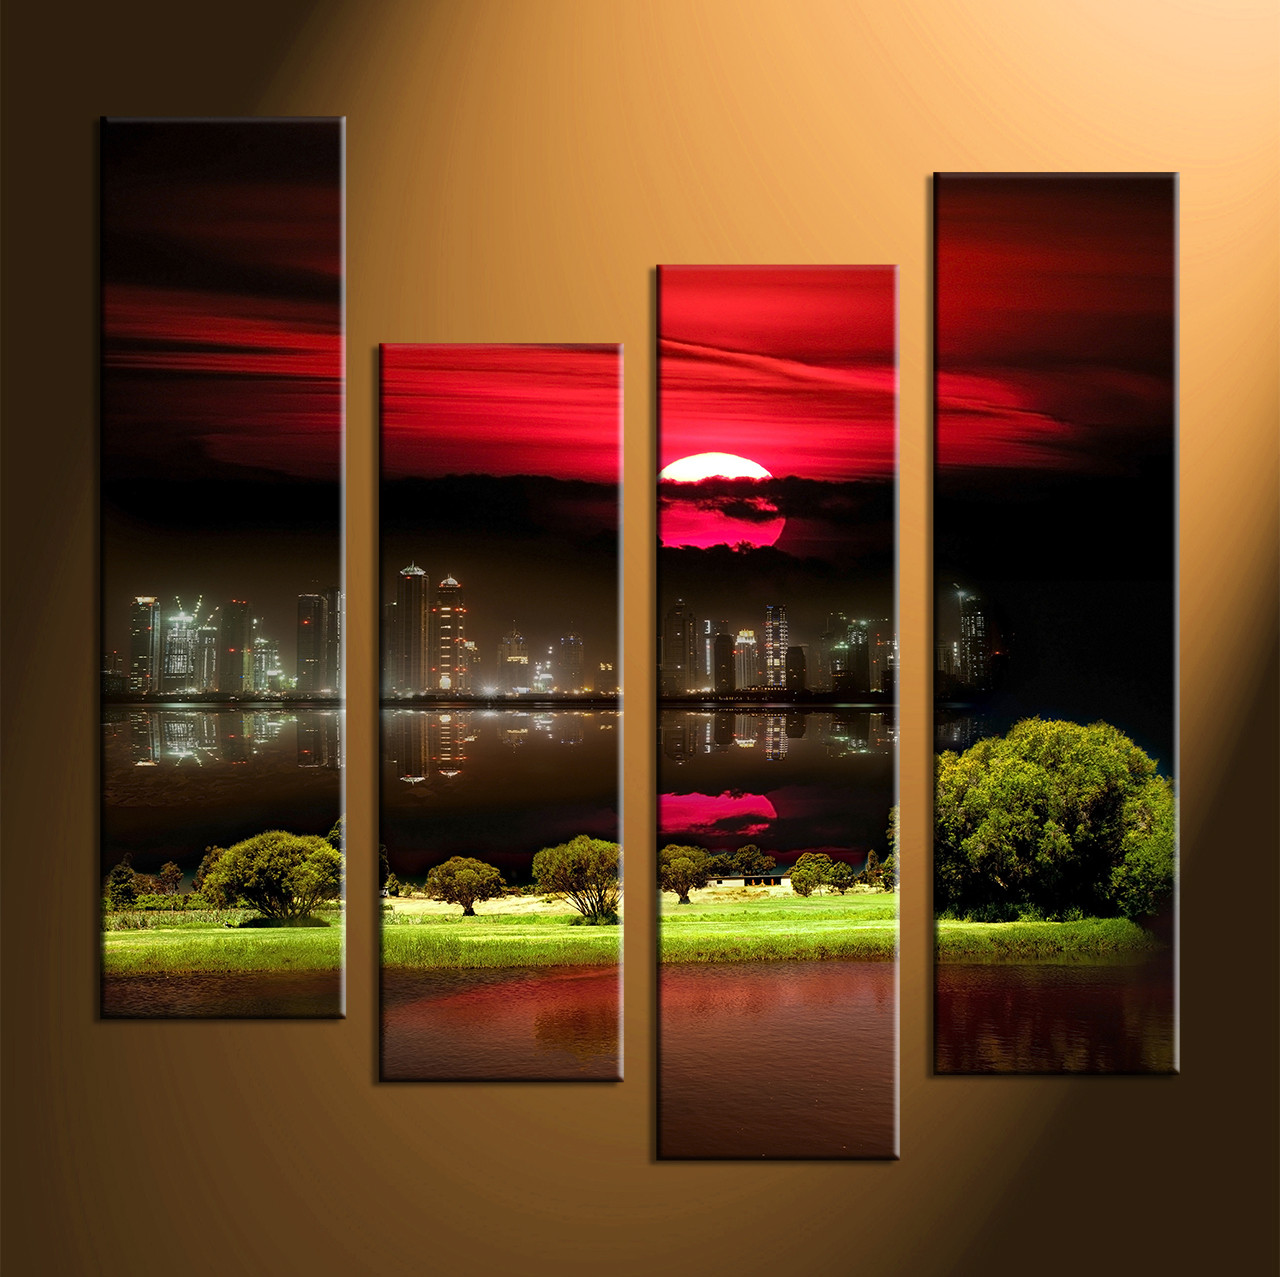 Genial Home Wall Decor, 4 Piece Canvas Art Prints, City Huge Pictures, City  Landscape